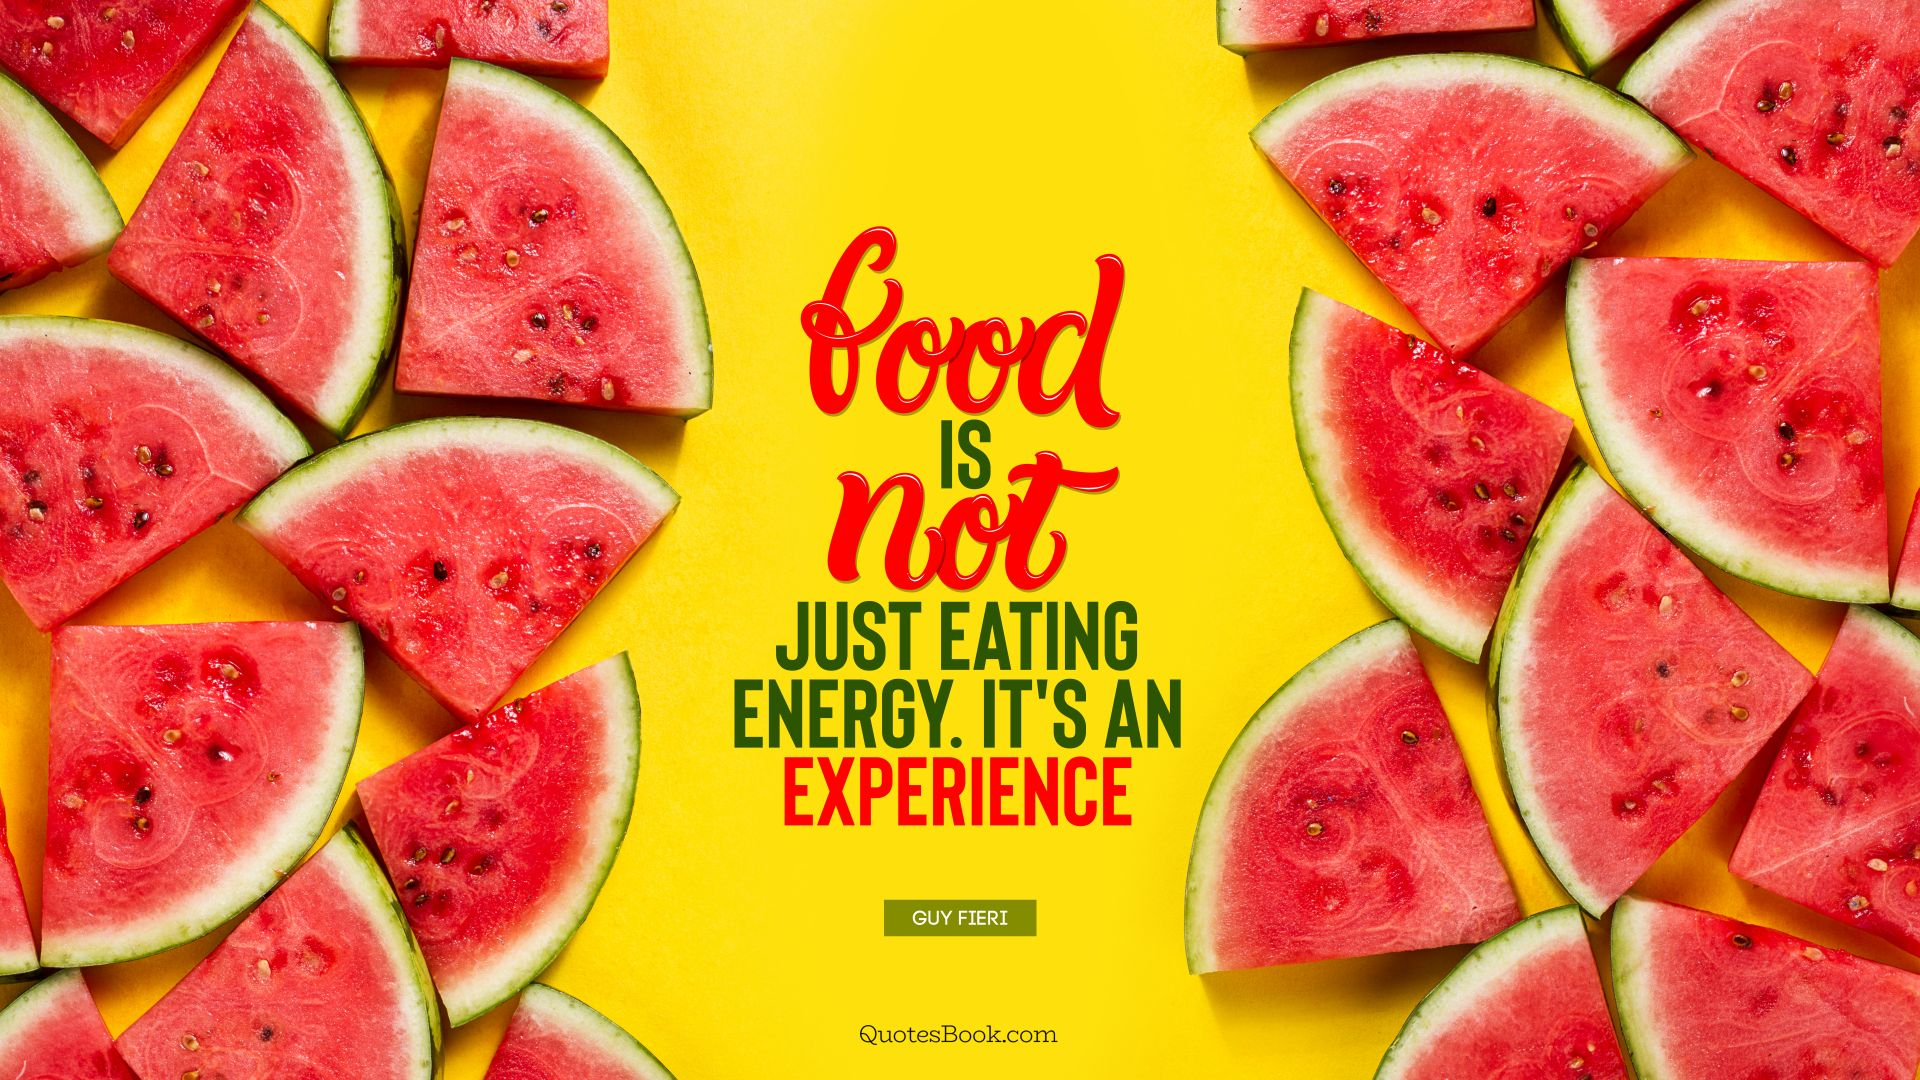 Food is not just eating energy. It's an experience. - Quote by Guy Fieri